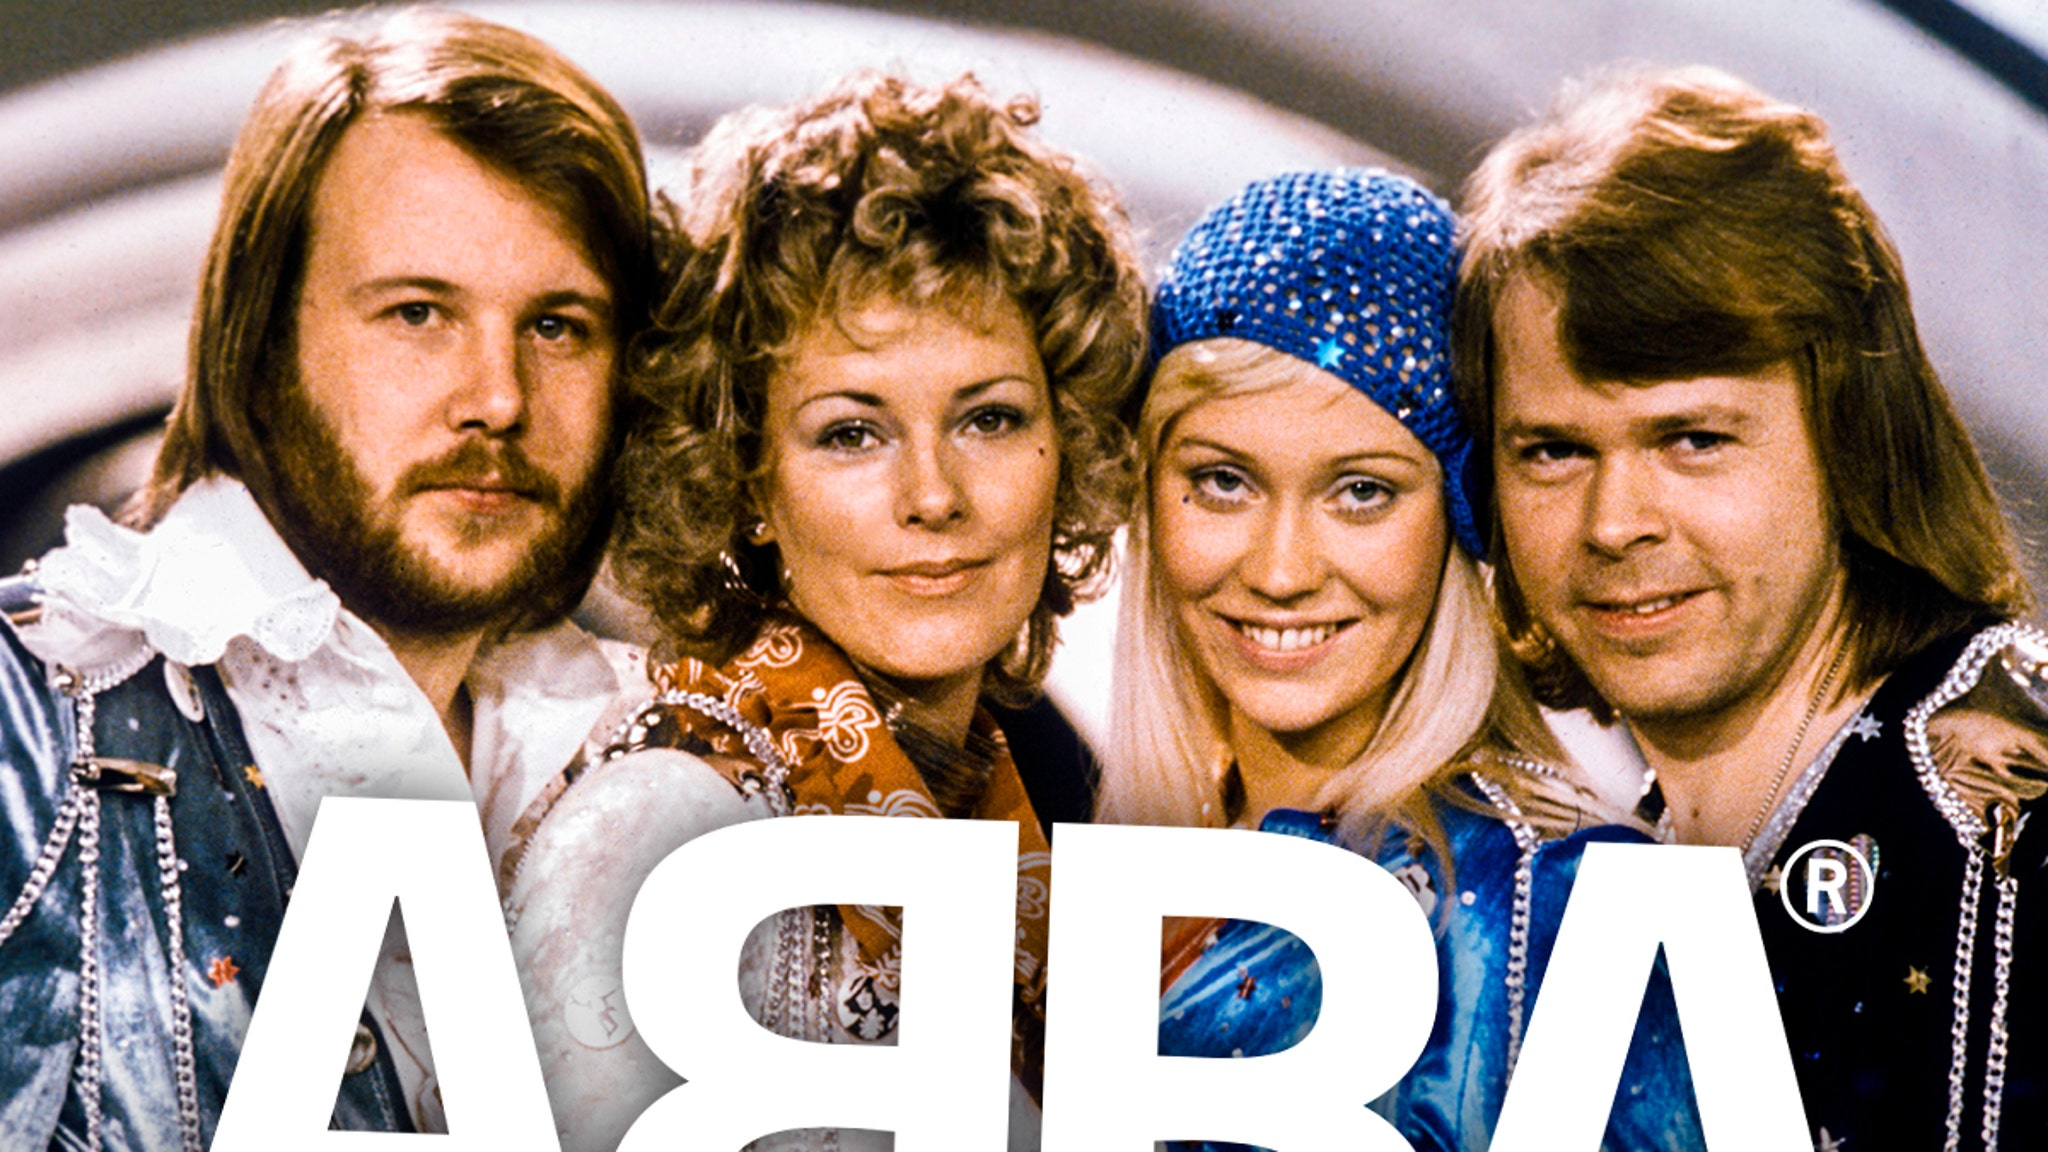 ABBA Announces First Album in 40 Years, 'Revolutionary' Concert thumbnail